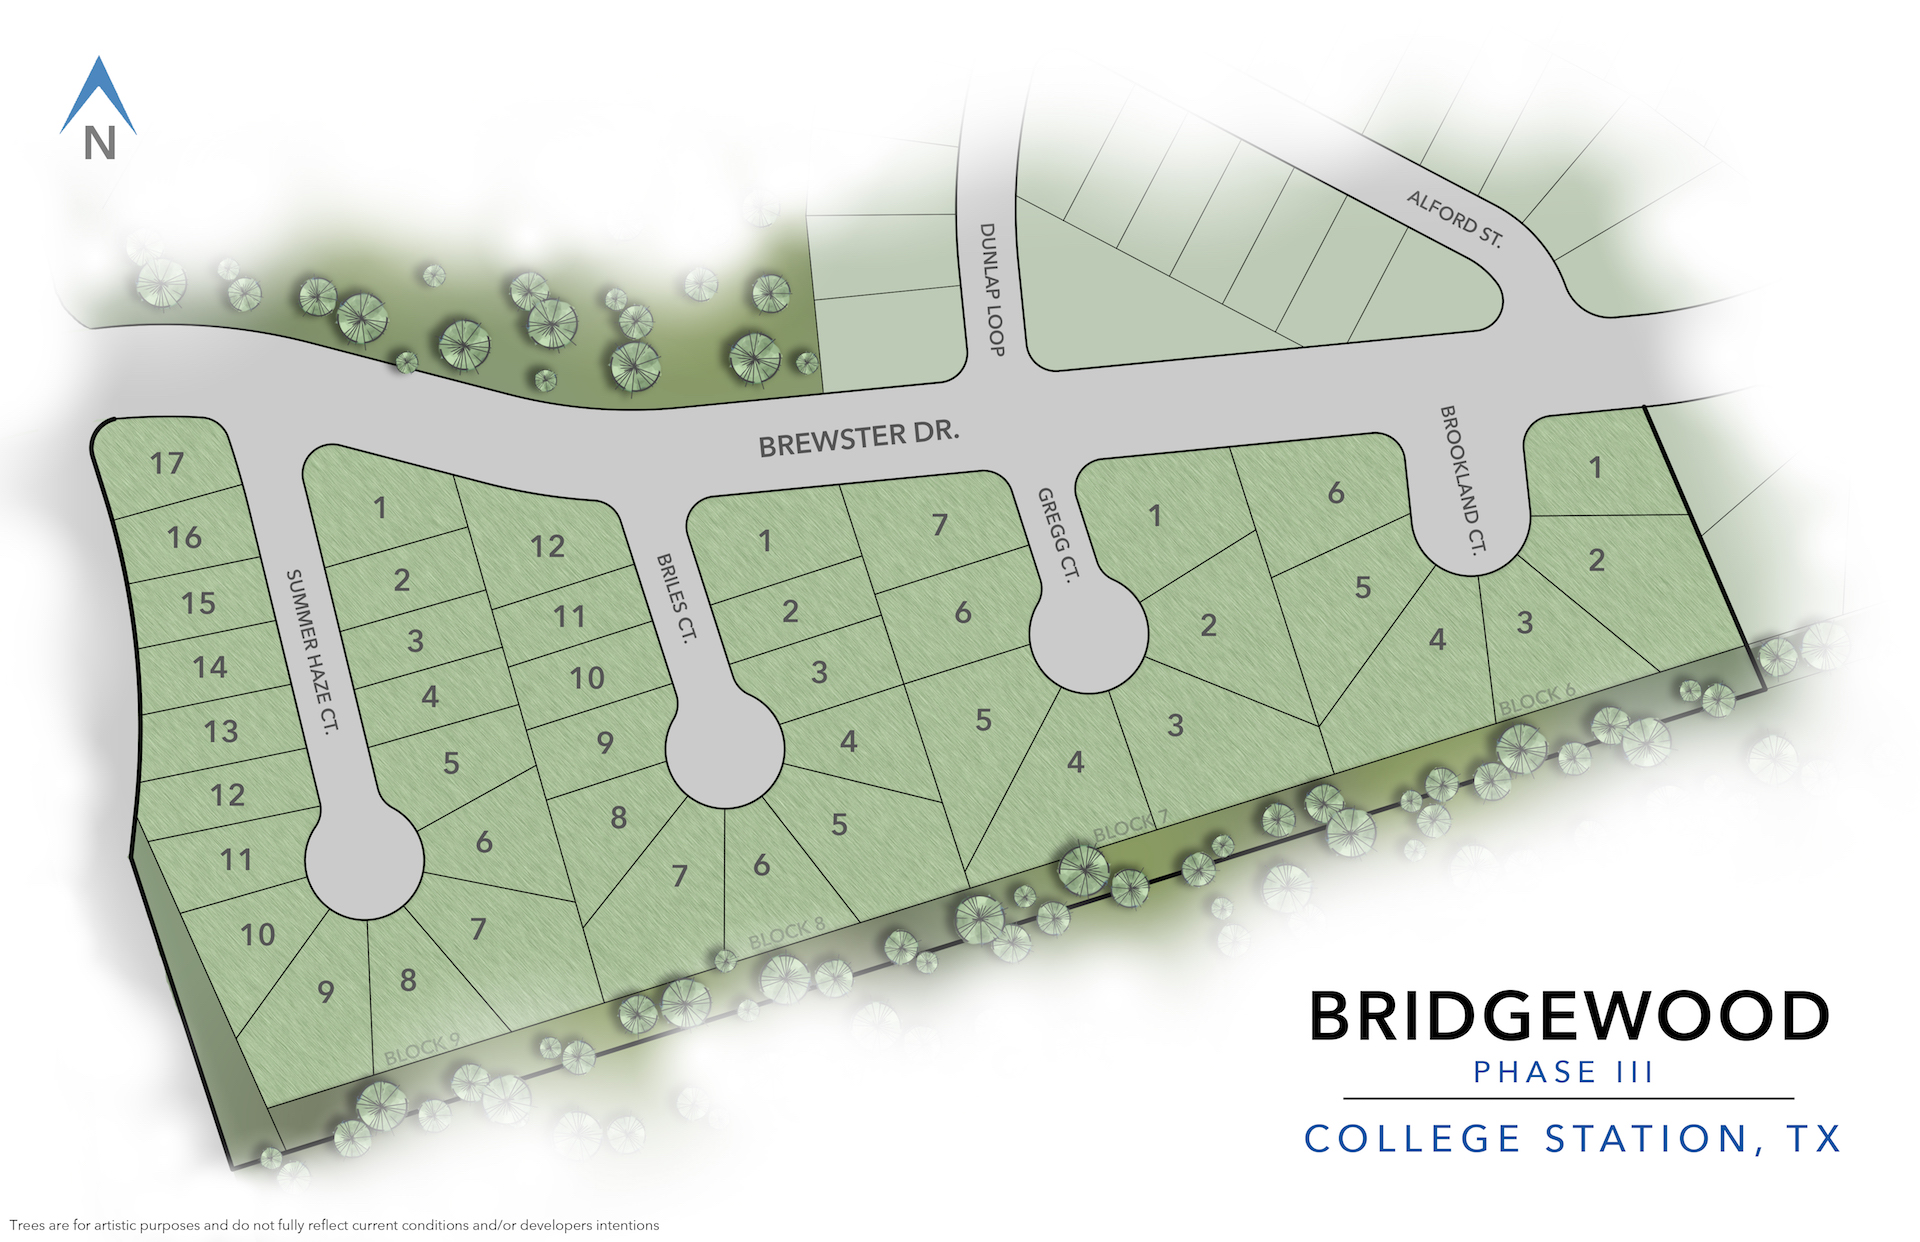 College Station, TX Bridgewood New Homes from Stylecraft Builders